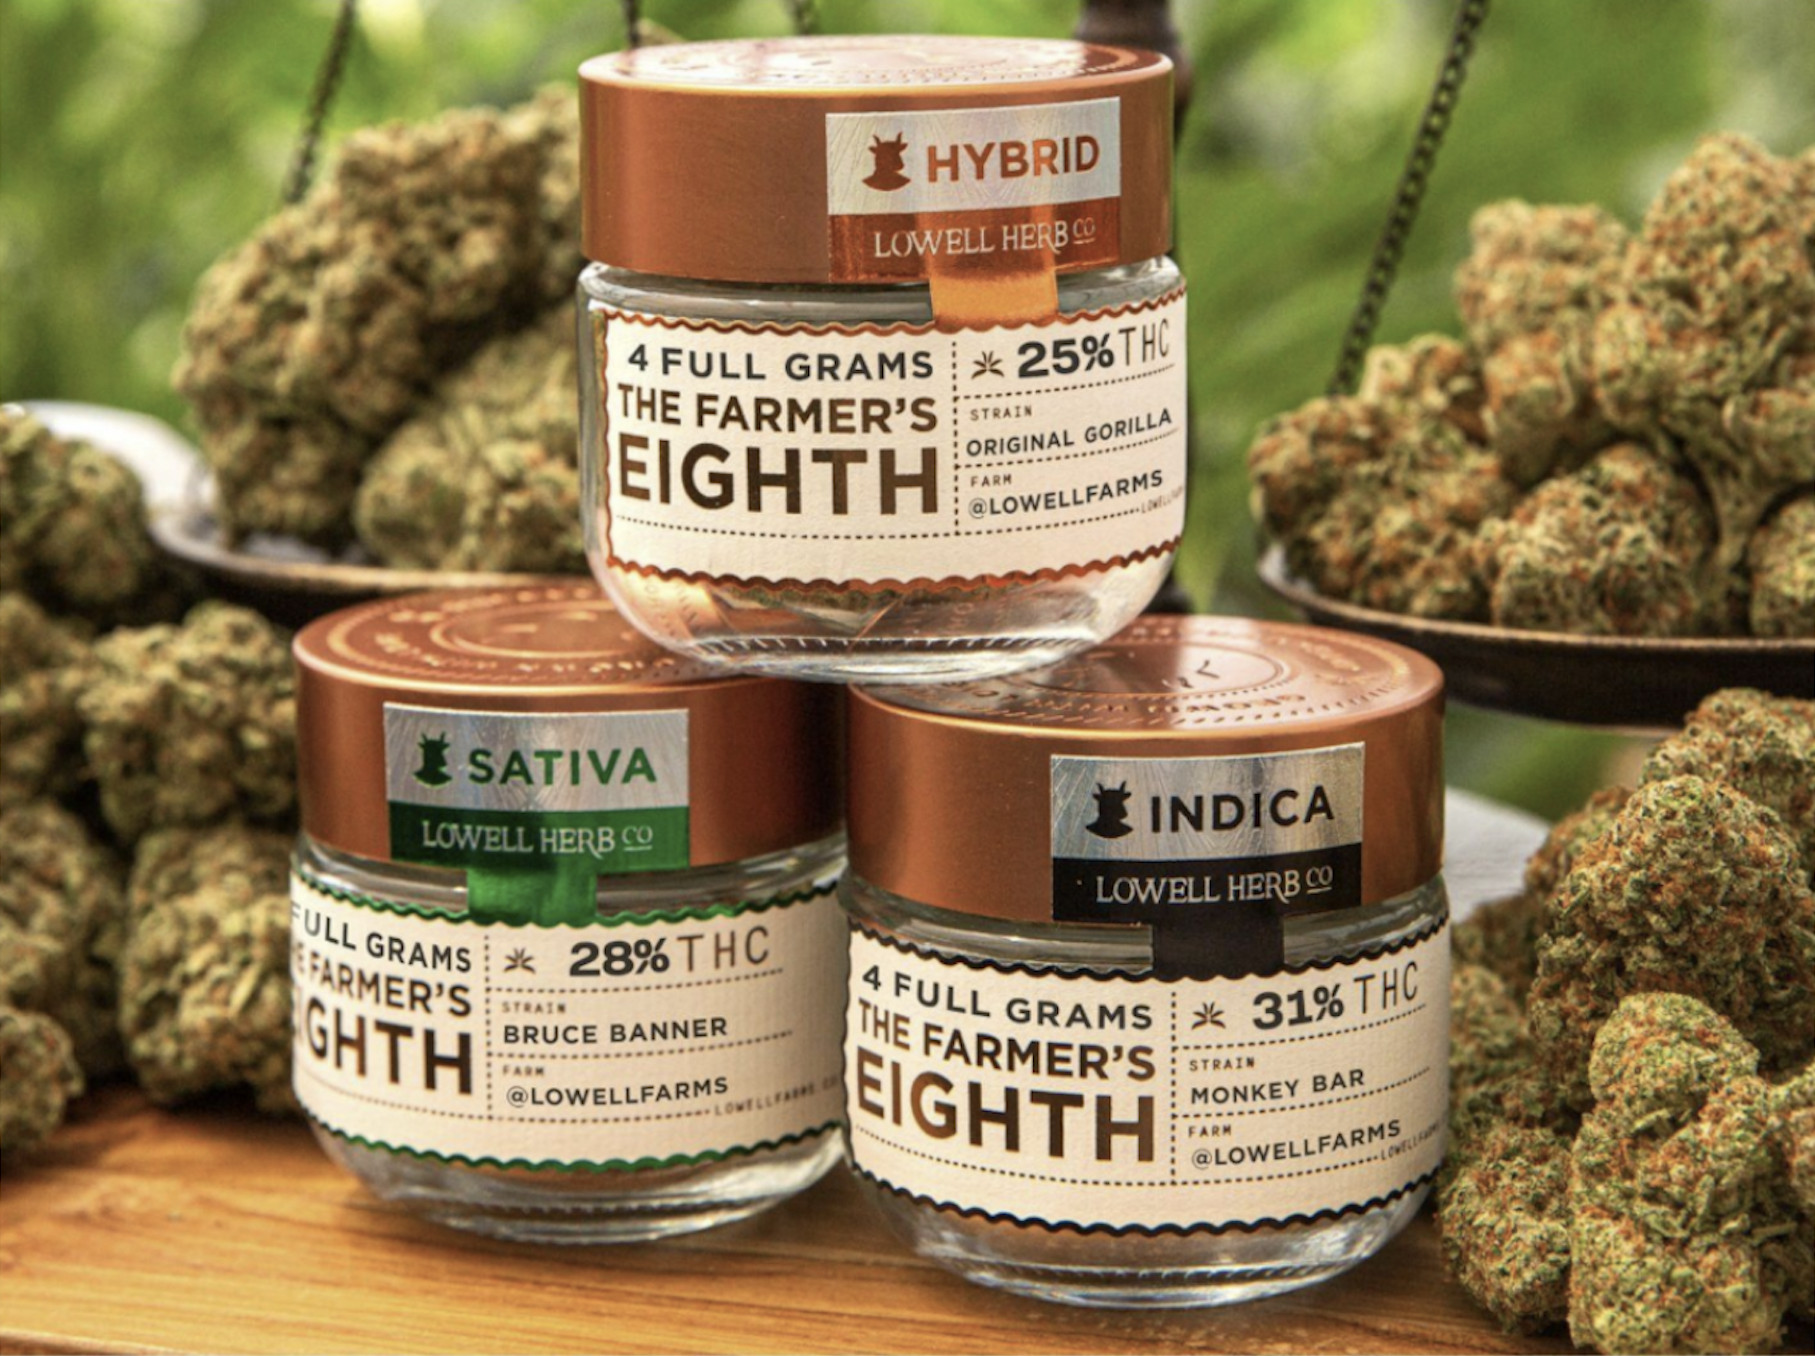 Introducing The Farmer's Eighth from Lowell Farms